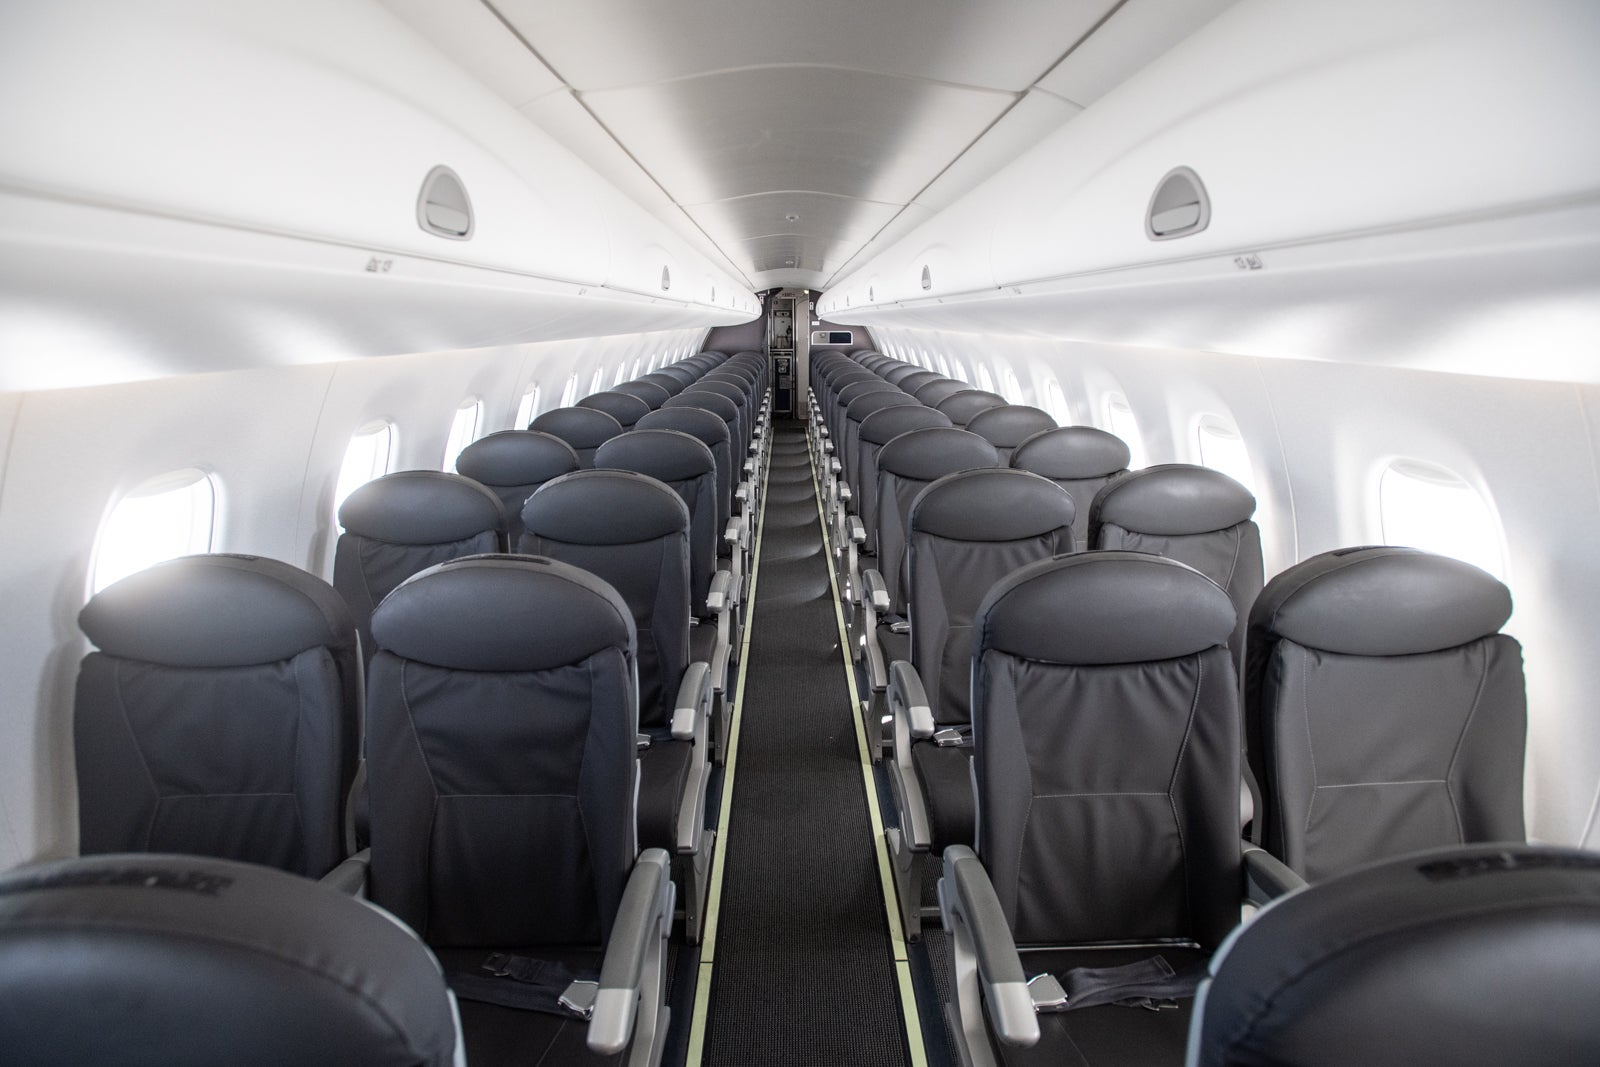 The Coronavirus Outbreak Has Airlines Running Empty 'Ghost' Flights